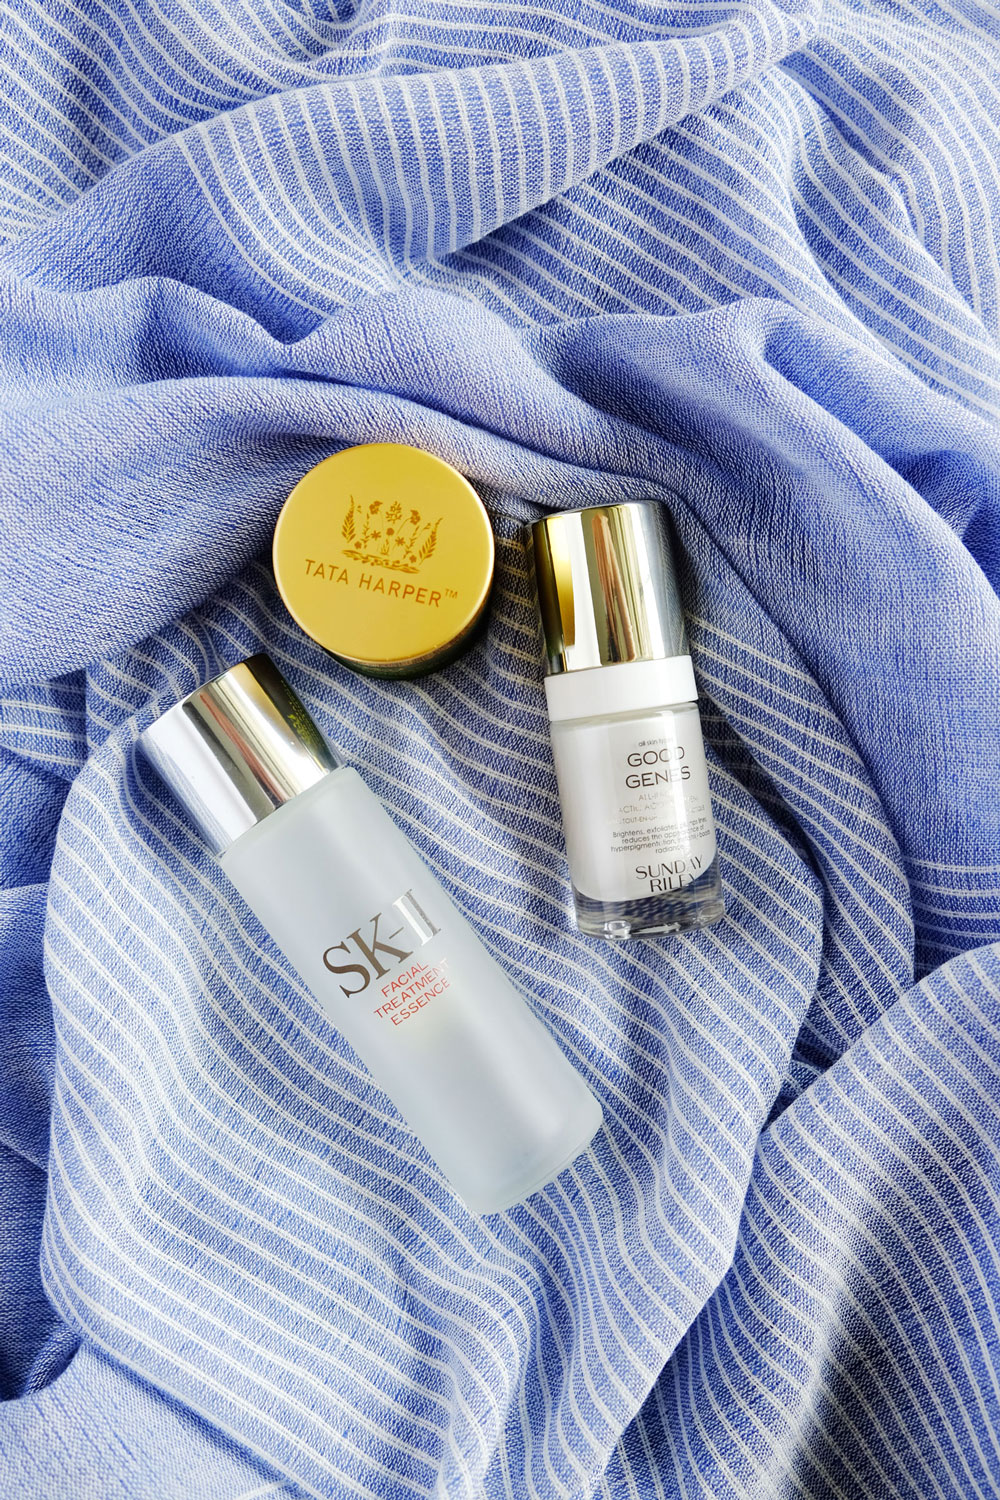 A review of three holy grail beauty products that did not work for me | The Good Living Blog #skII #sundayriley #goodgenes #tataharper #beautyreviews